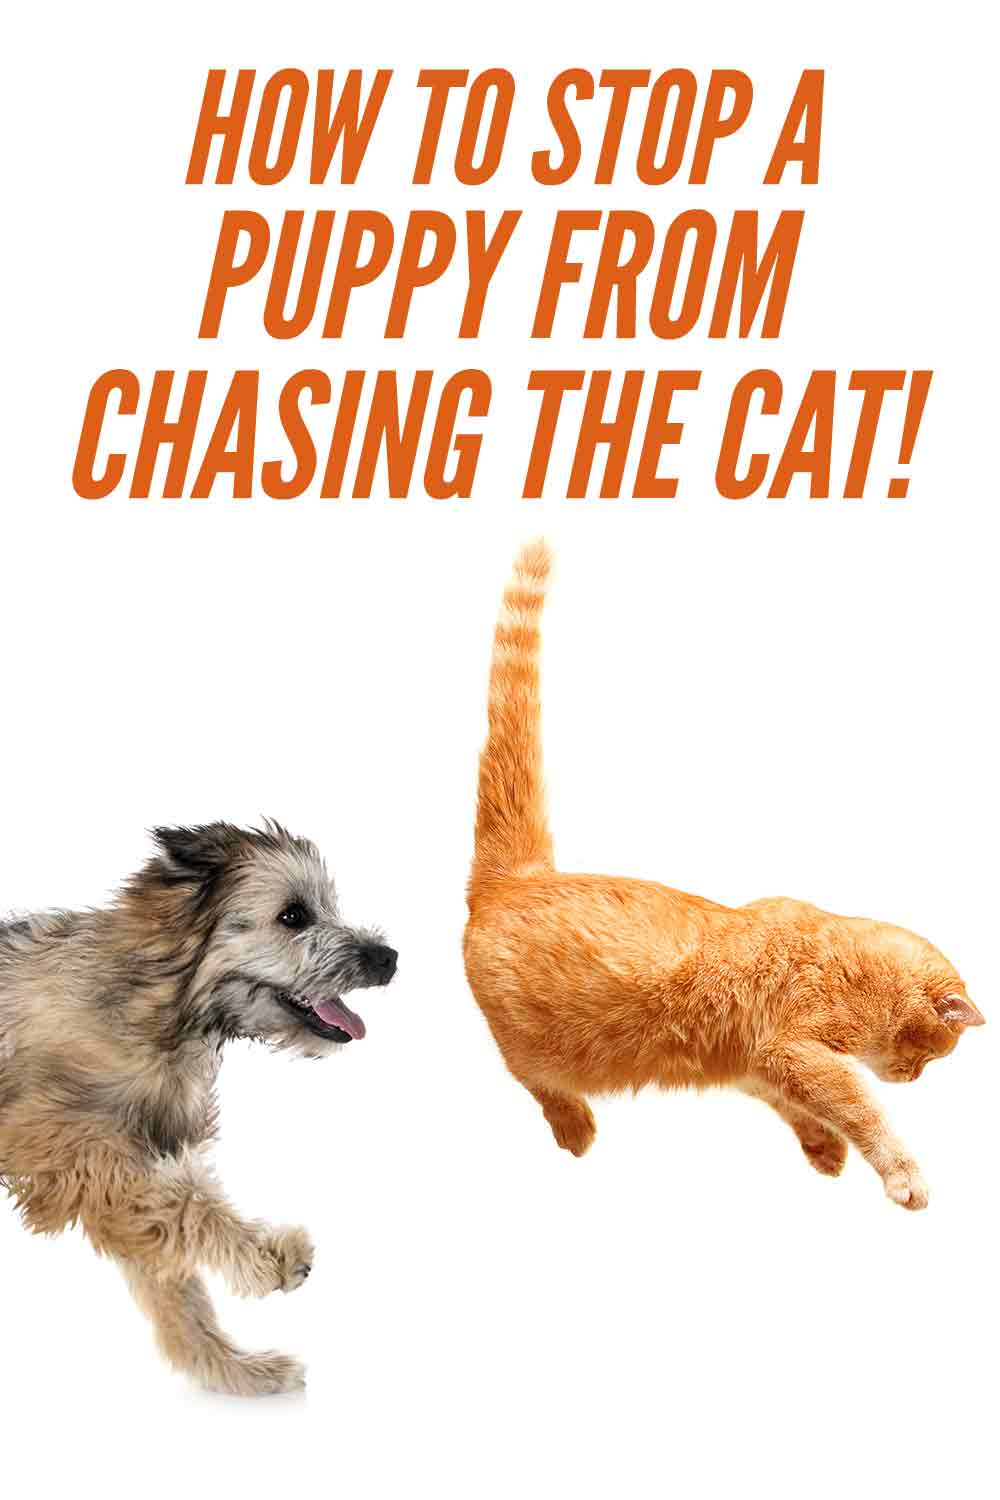 how to stop a puppy from chasing the cat